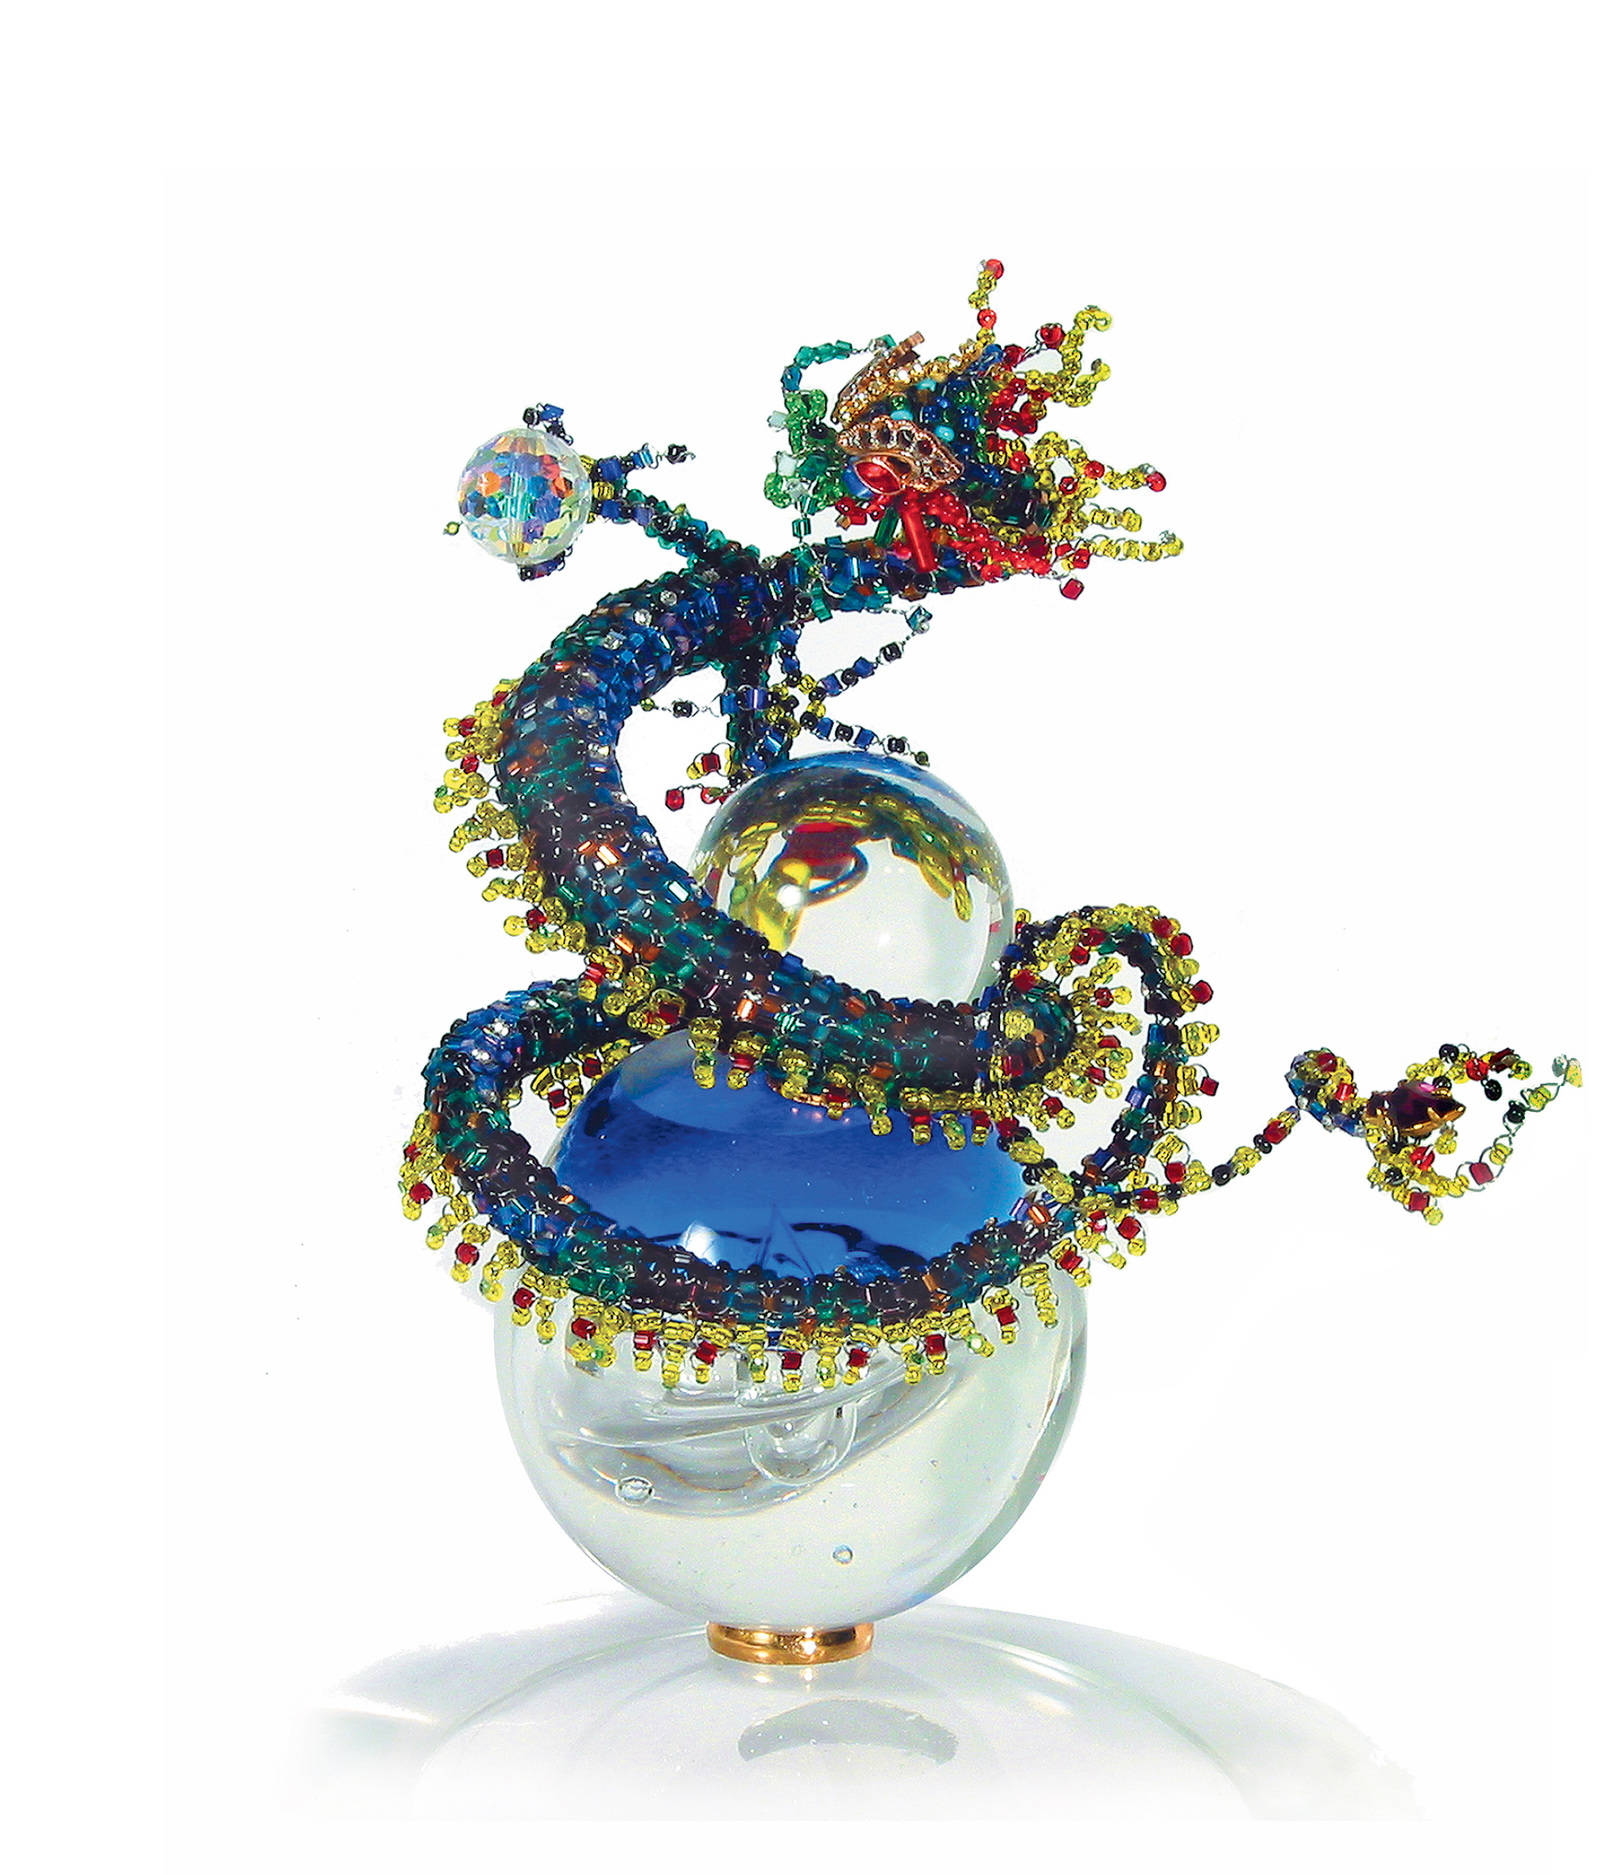 THE DRAGON OF A NEW MILLENIUM» Beads, rock crystal, glass, Swarovski; О-210 mm, H-210 mm. Package: 220 mm (diameter), 360 mm (height).